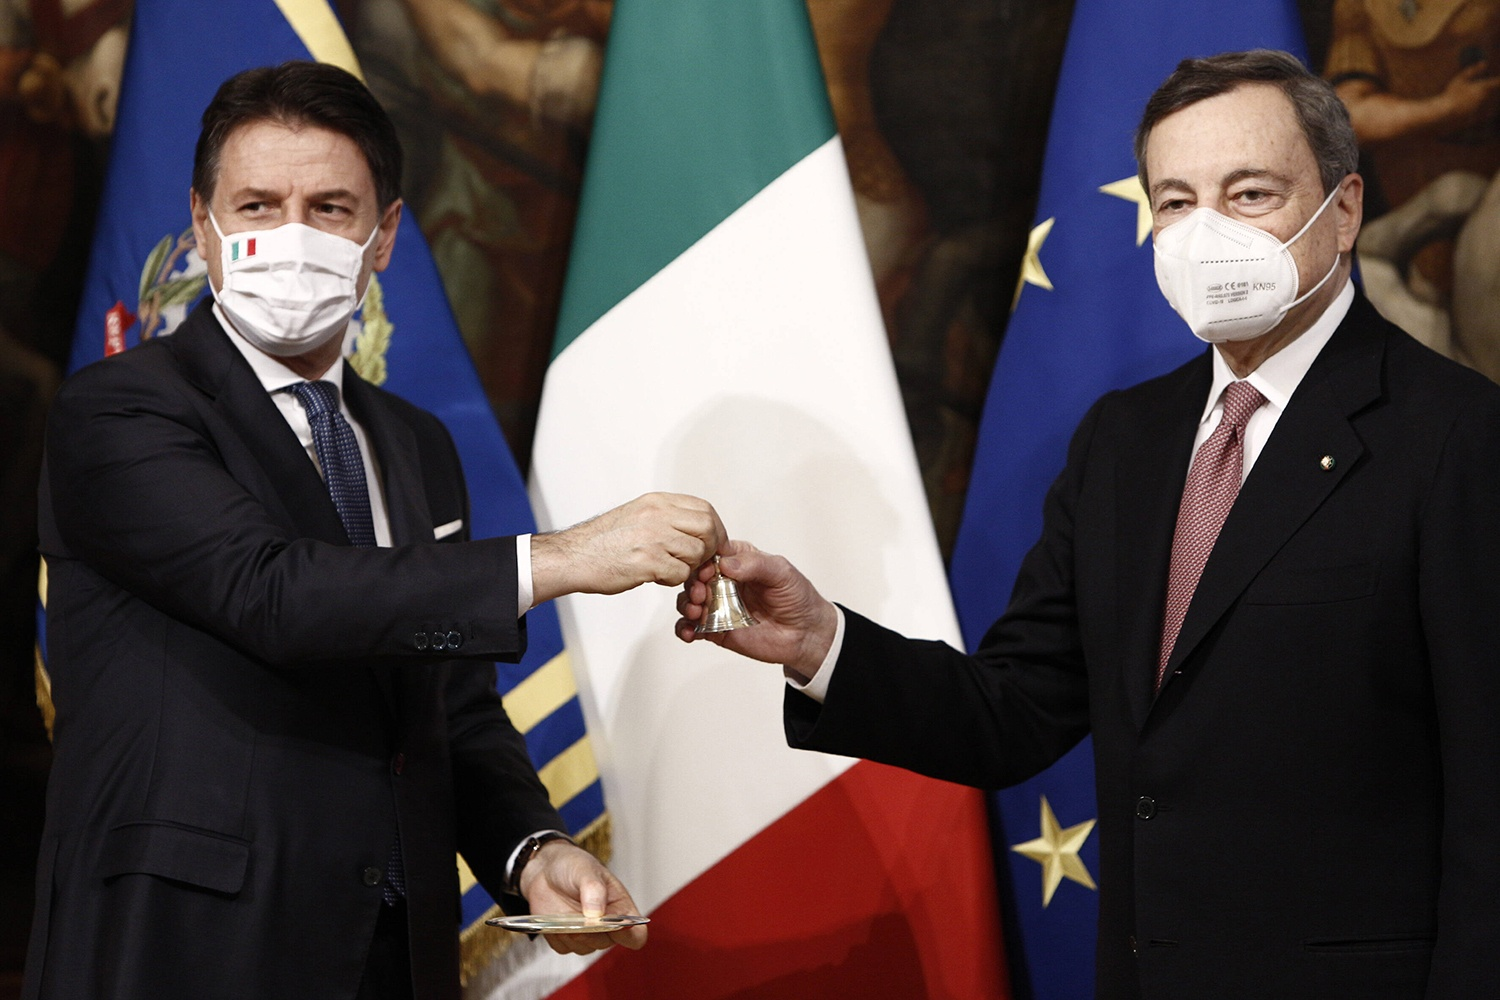 How to Get Away with a Government Crisis: Italy's Cabinet's Reshuffle in Times of Pandemic